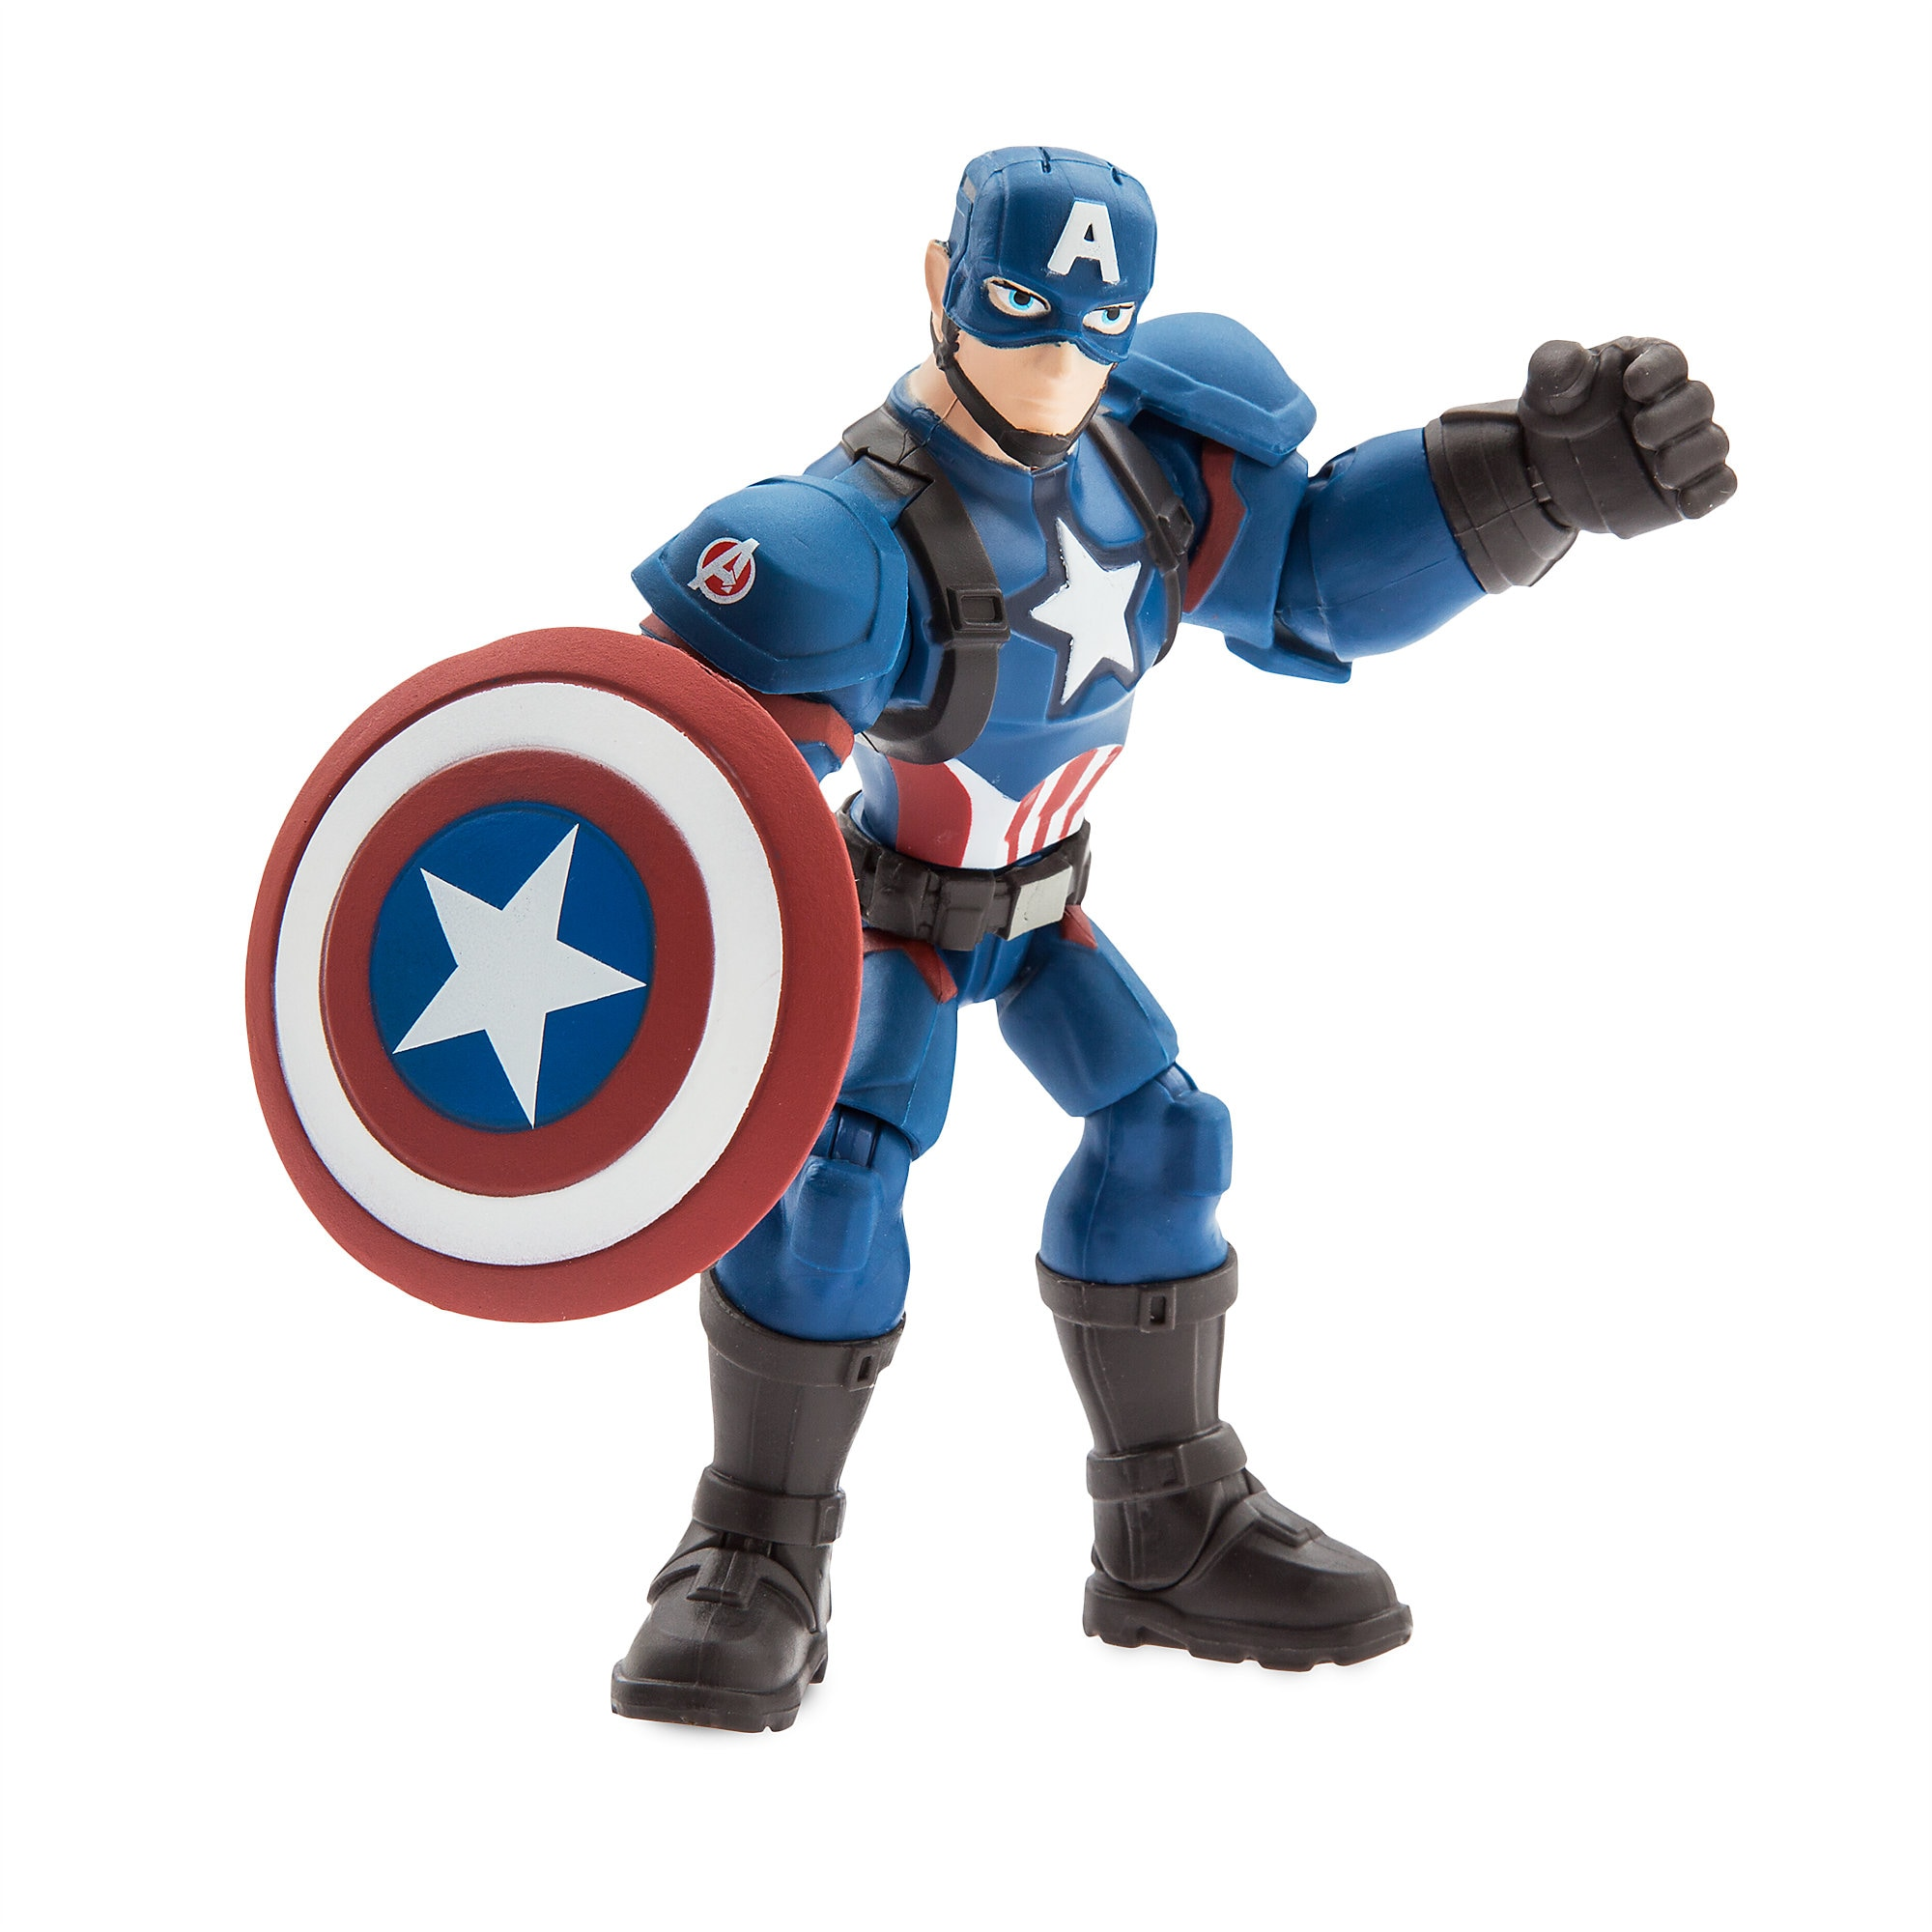 Captain America Action Figure   Marvel Toybox   shopDisney Product Image of Captain America Action Figure   Marvel Toybox   1